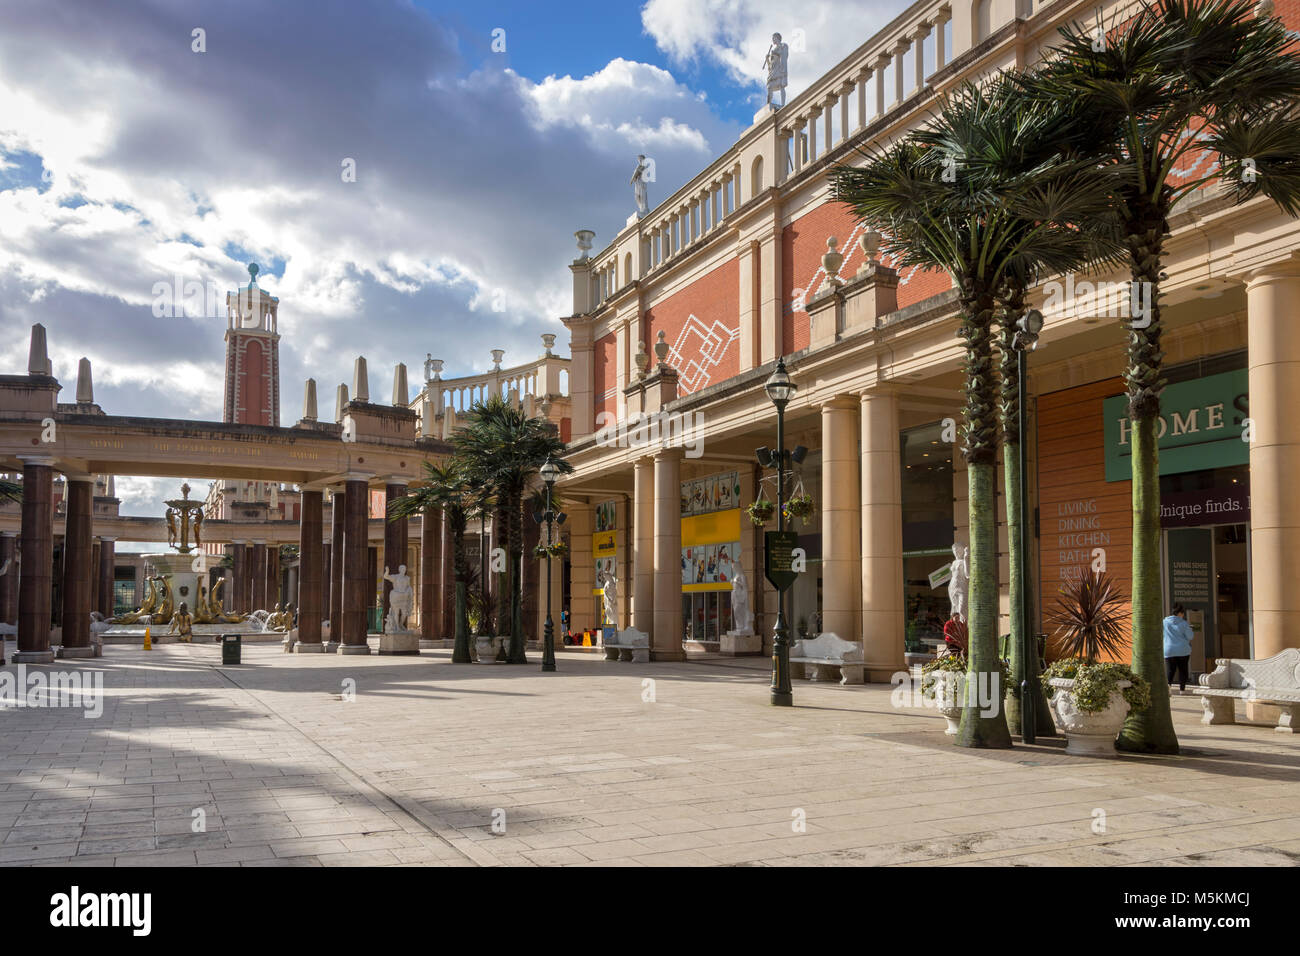 Barton Square at the intu Trafford Centre, Manchester, UK - Stock Image